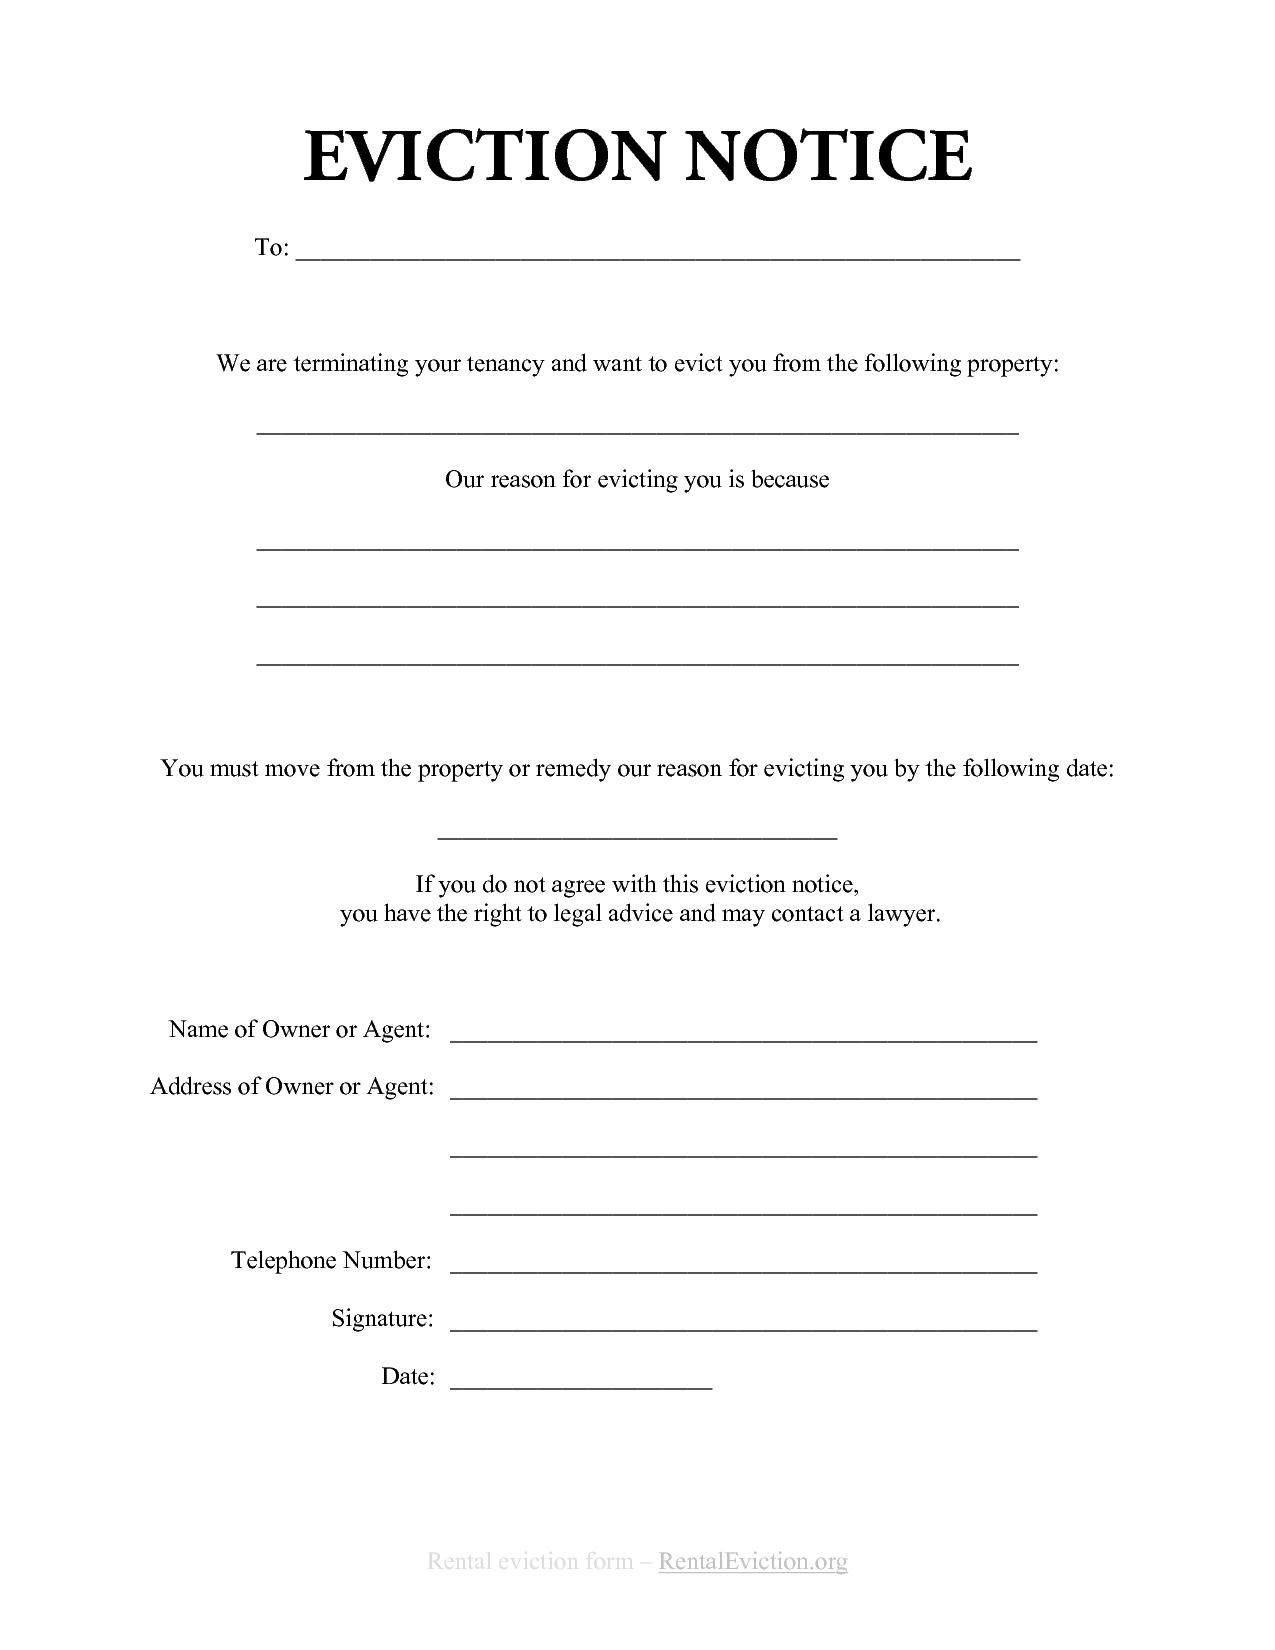 Eviction Letter Template Word - Free Print Out Eviction Notices Free Rental Eviction Notice